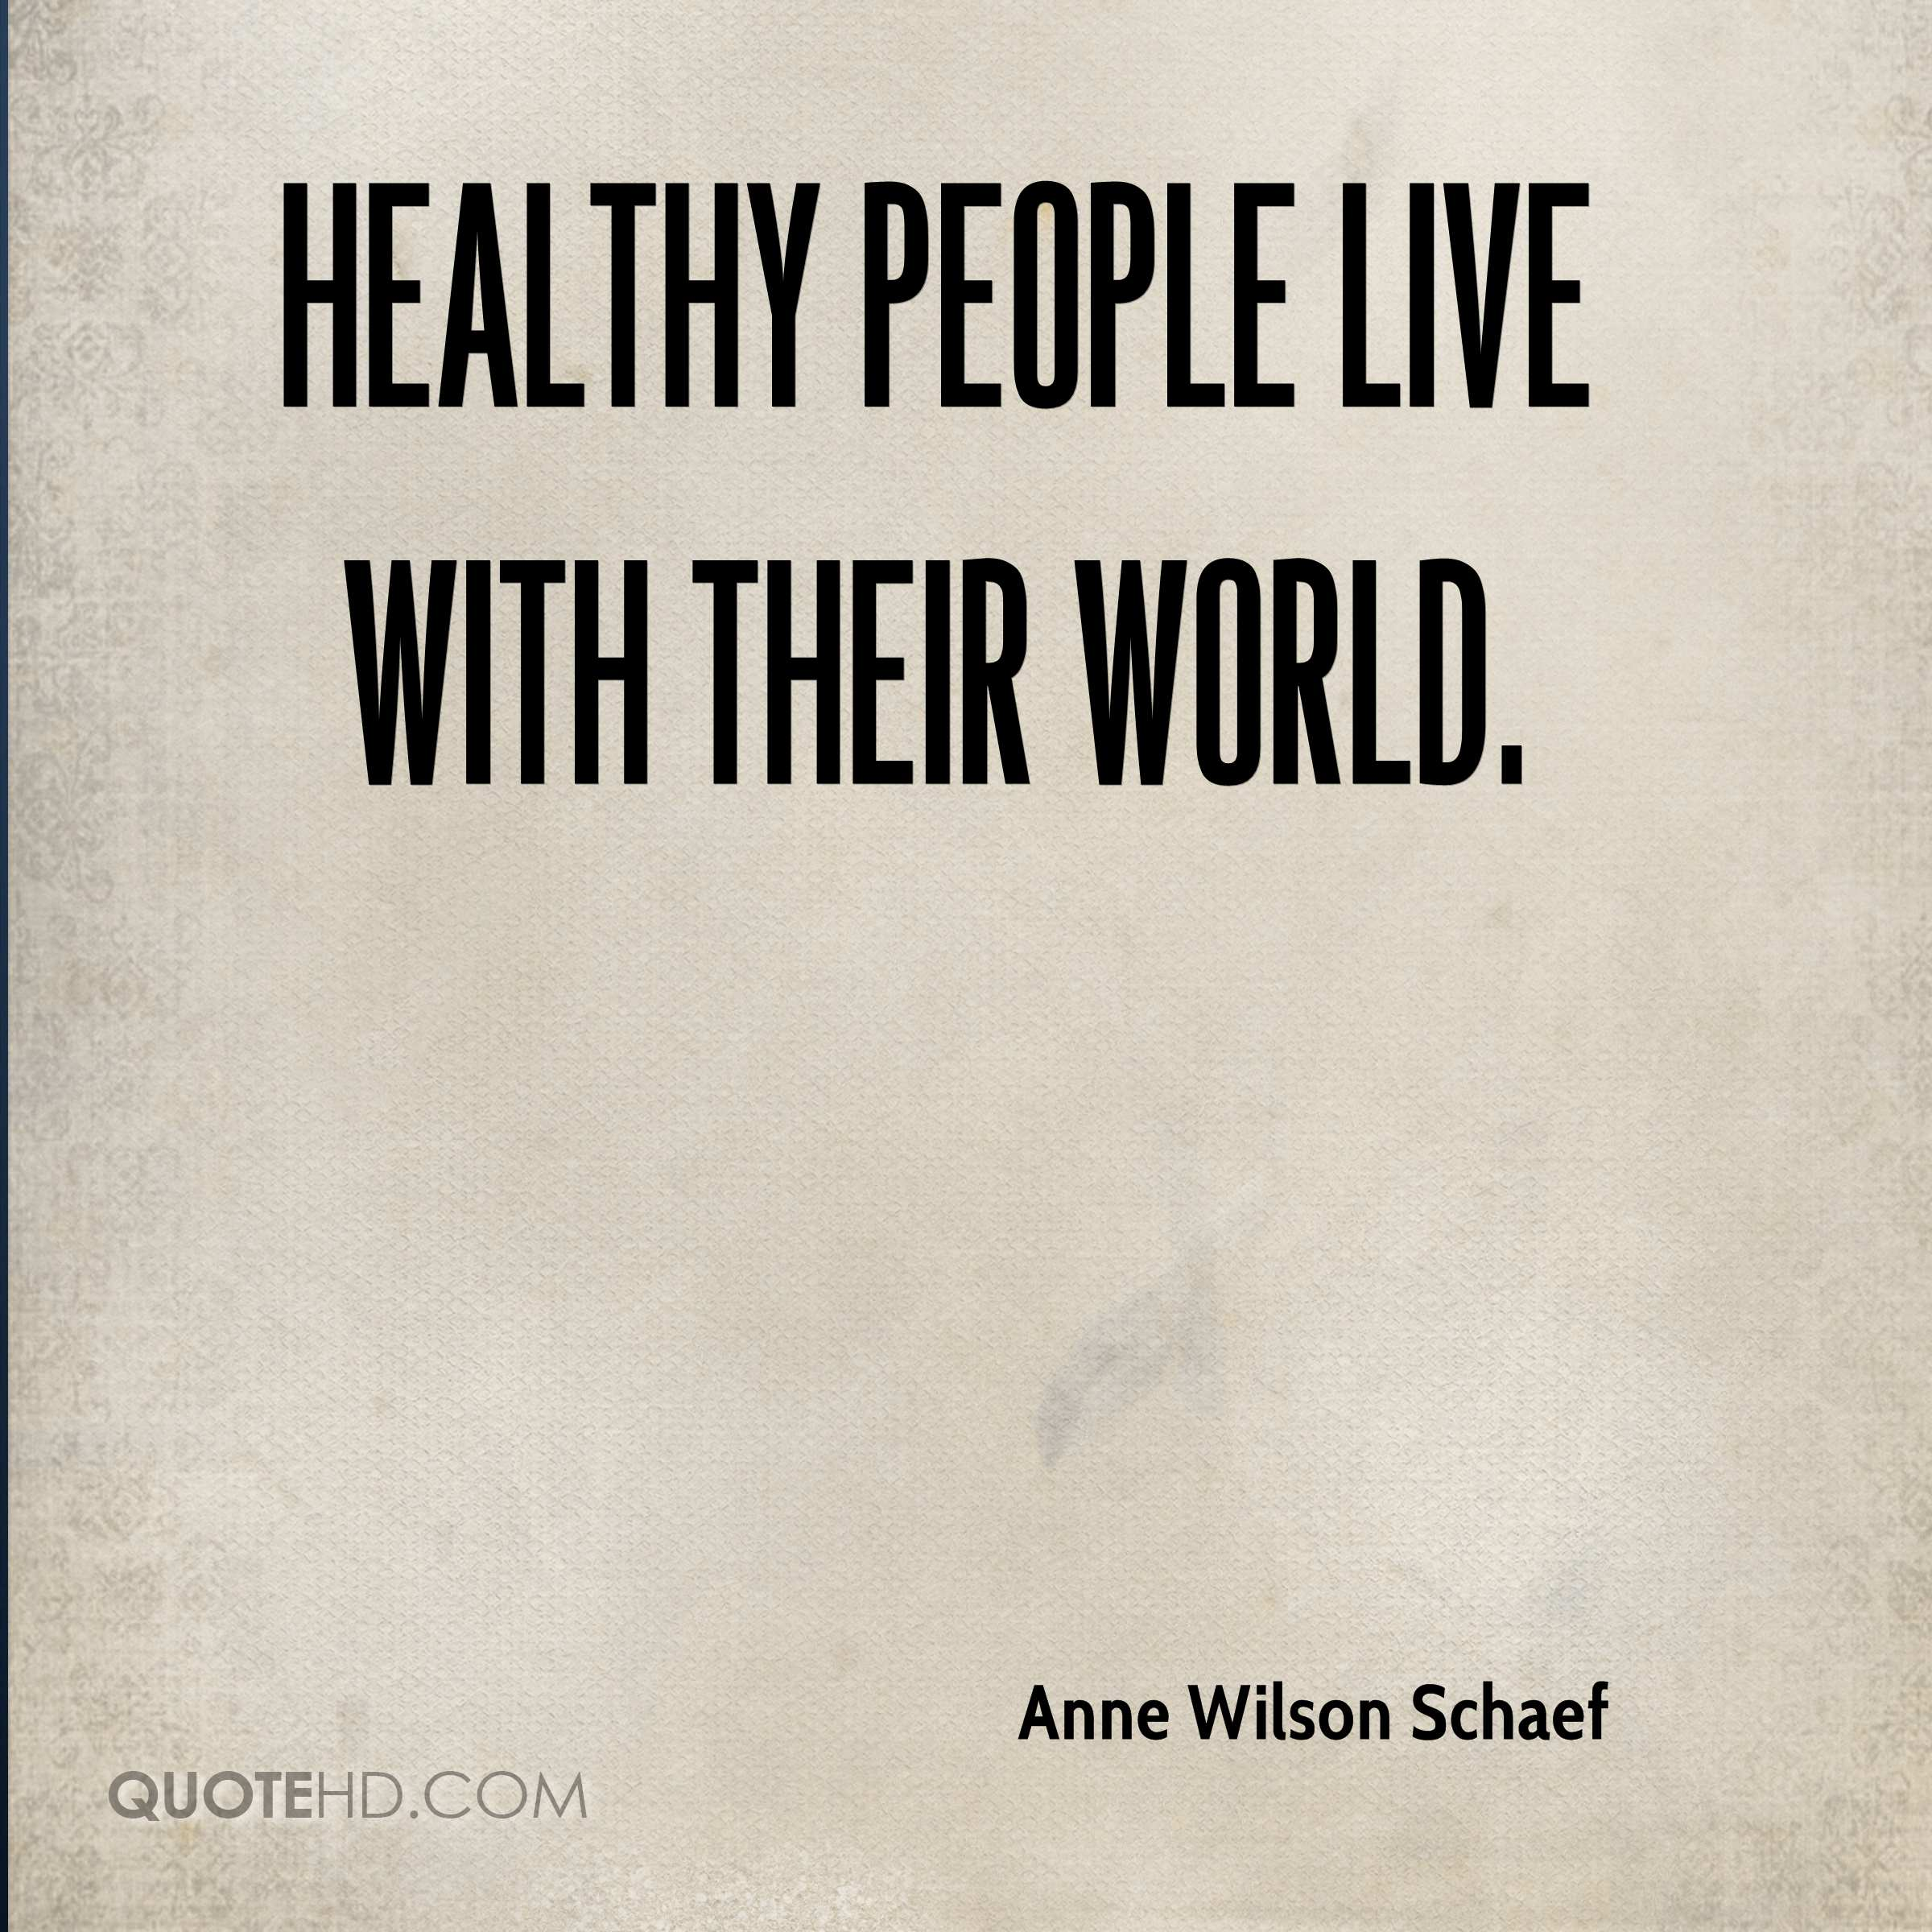 Healthy People Live With Their World.